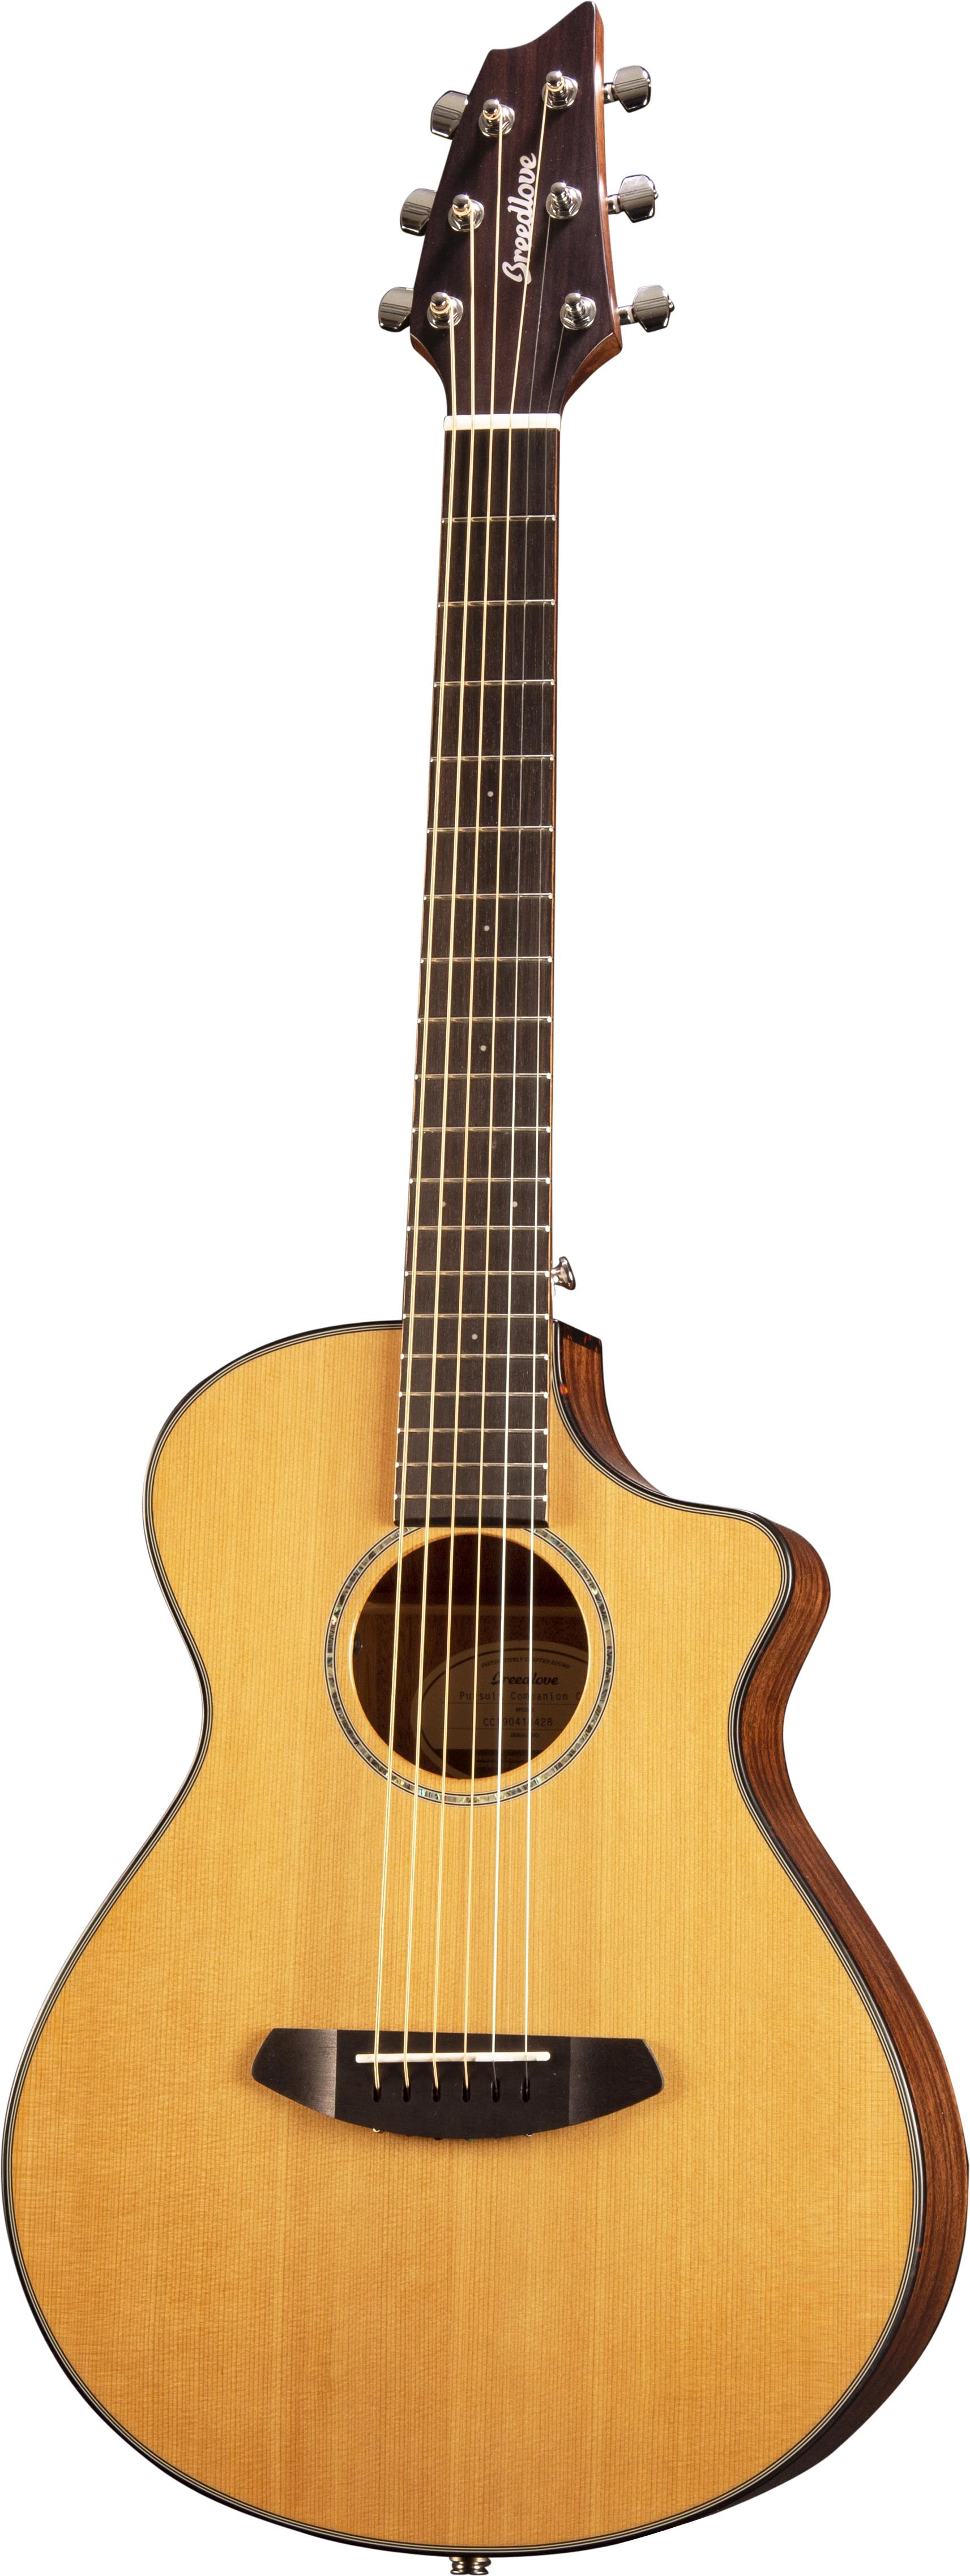 Breedlove Pursuit Companion CE - Red Cedar/Mahogany (Travel)